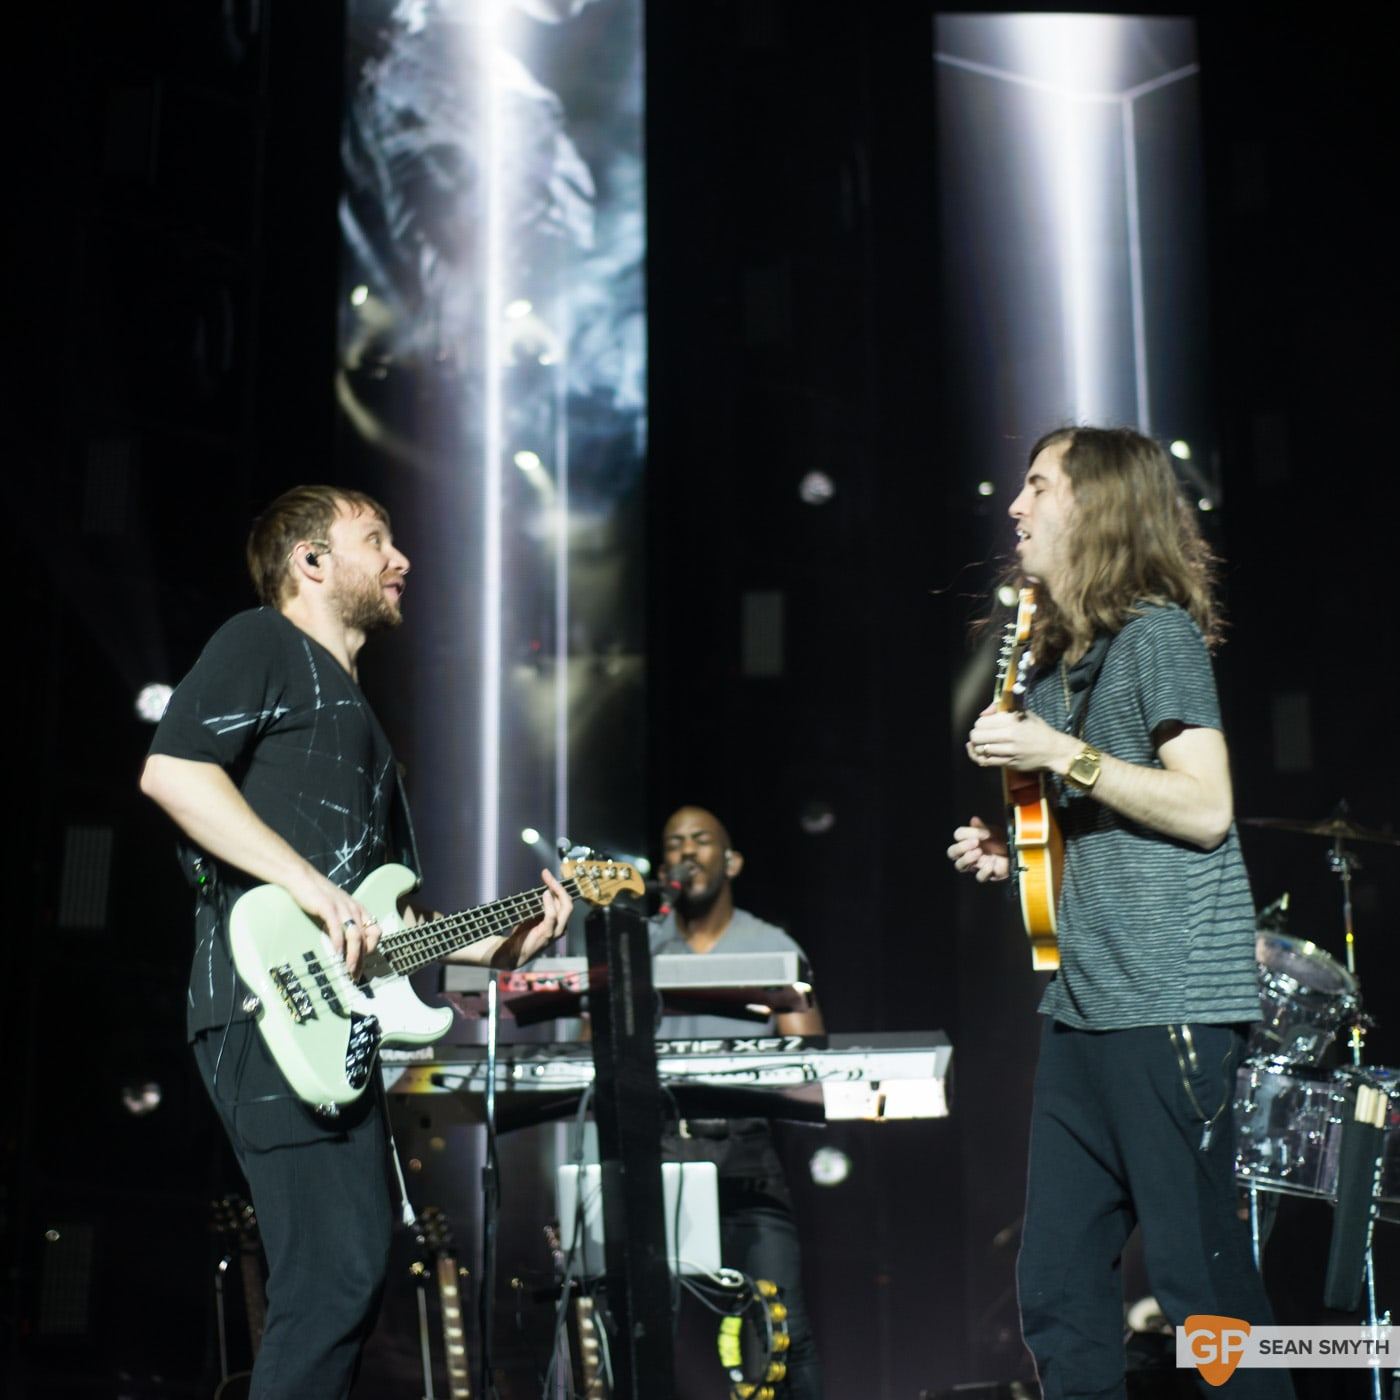 Imagine Dragons at 3Arena by Sean Smyth (18-11-15) (38 of 50)